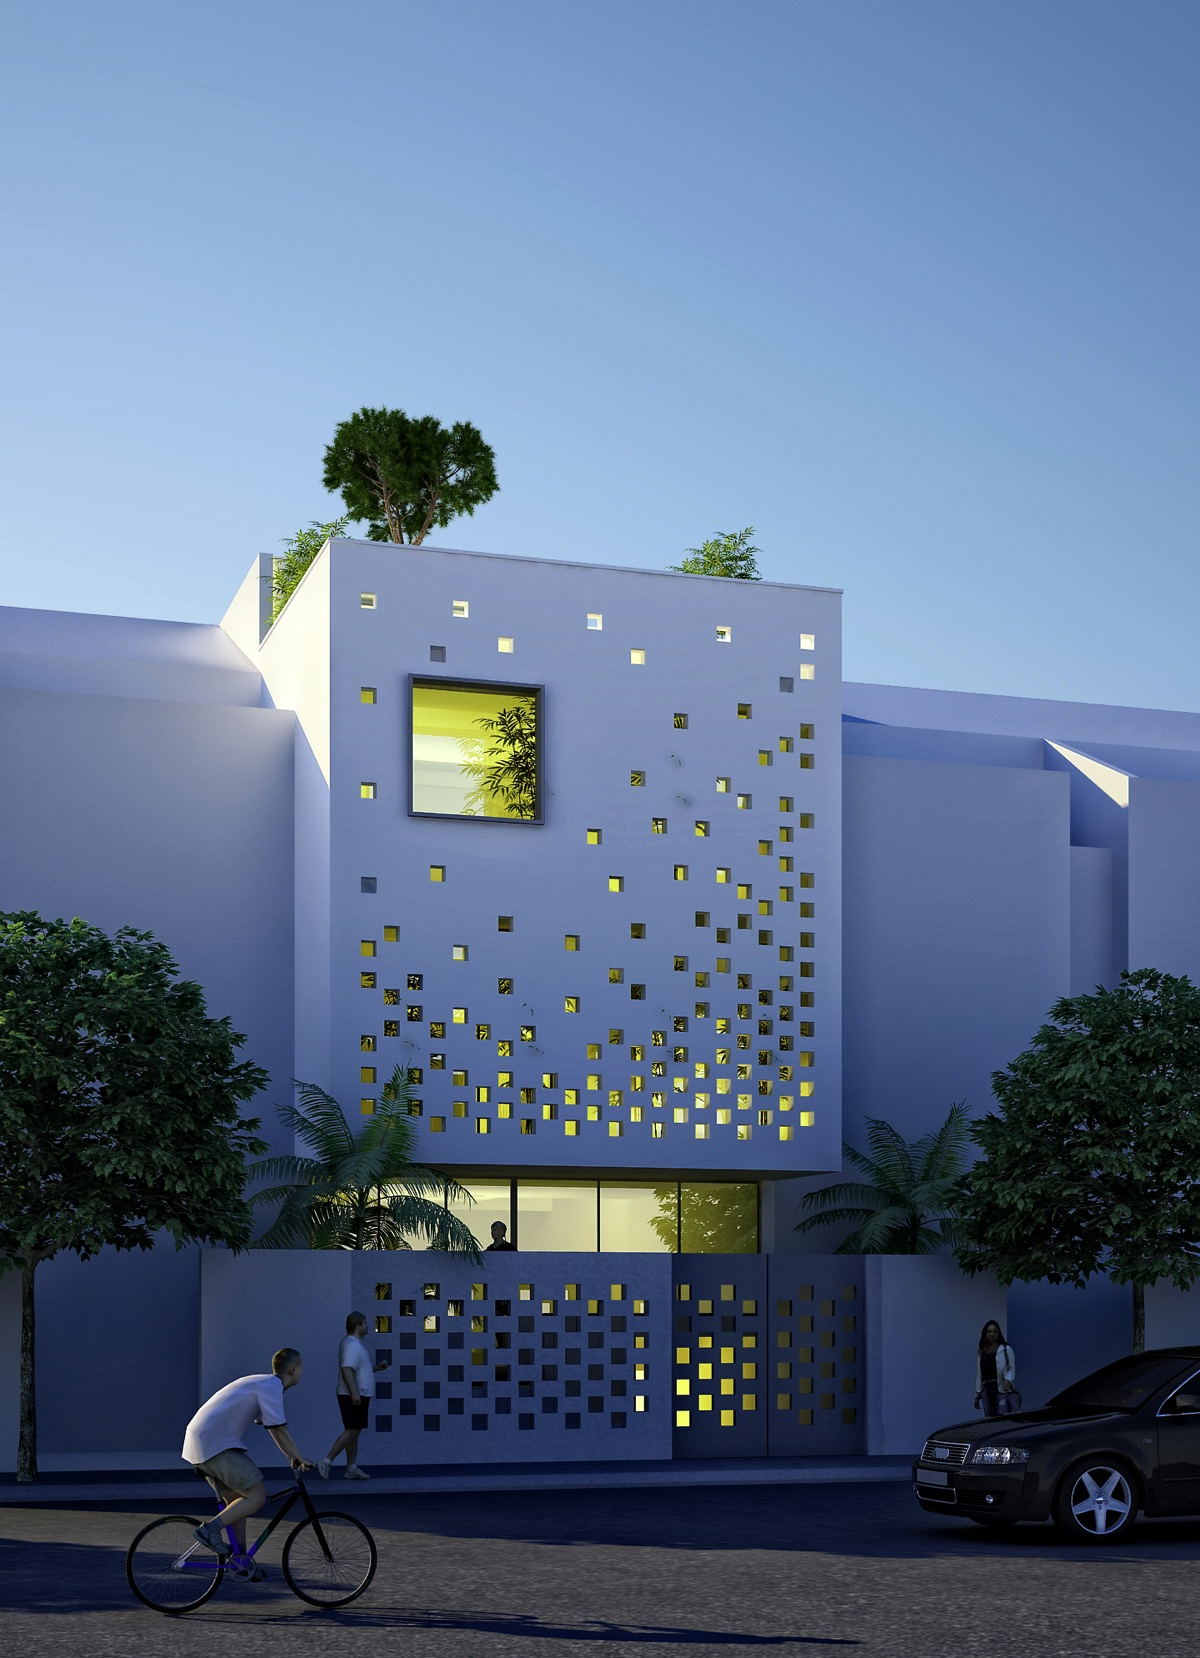 50 Narrow Lot Houses That Transform A Skinny Exterior Into ... on small house ceiling design, small house sustainability, small house construction, small house interior design, small modern contemporary homes, small house materials, crown asia house design, small house front design, small house architecture, house architecture design, small house exterior design, small house landscaping design, small row house plans, small house floor design, small house architectural design, small house roofs, small house kitchen design, small house windows, small modern narrow house, small house building ideas,